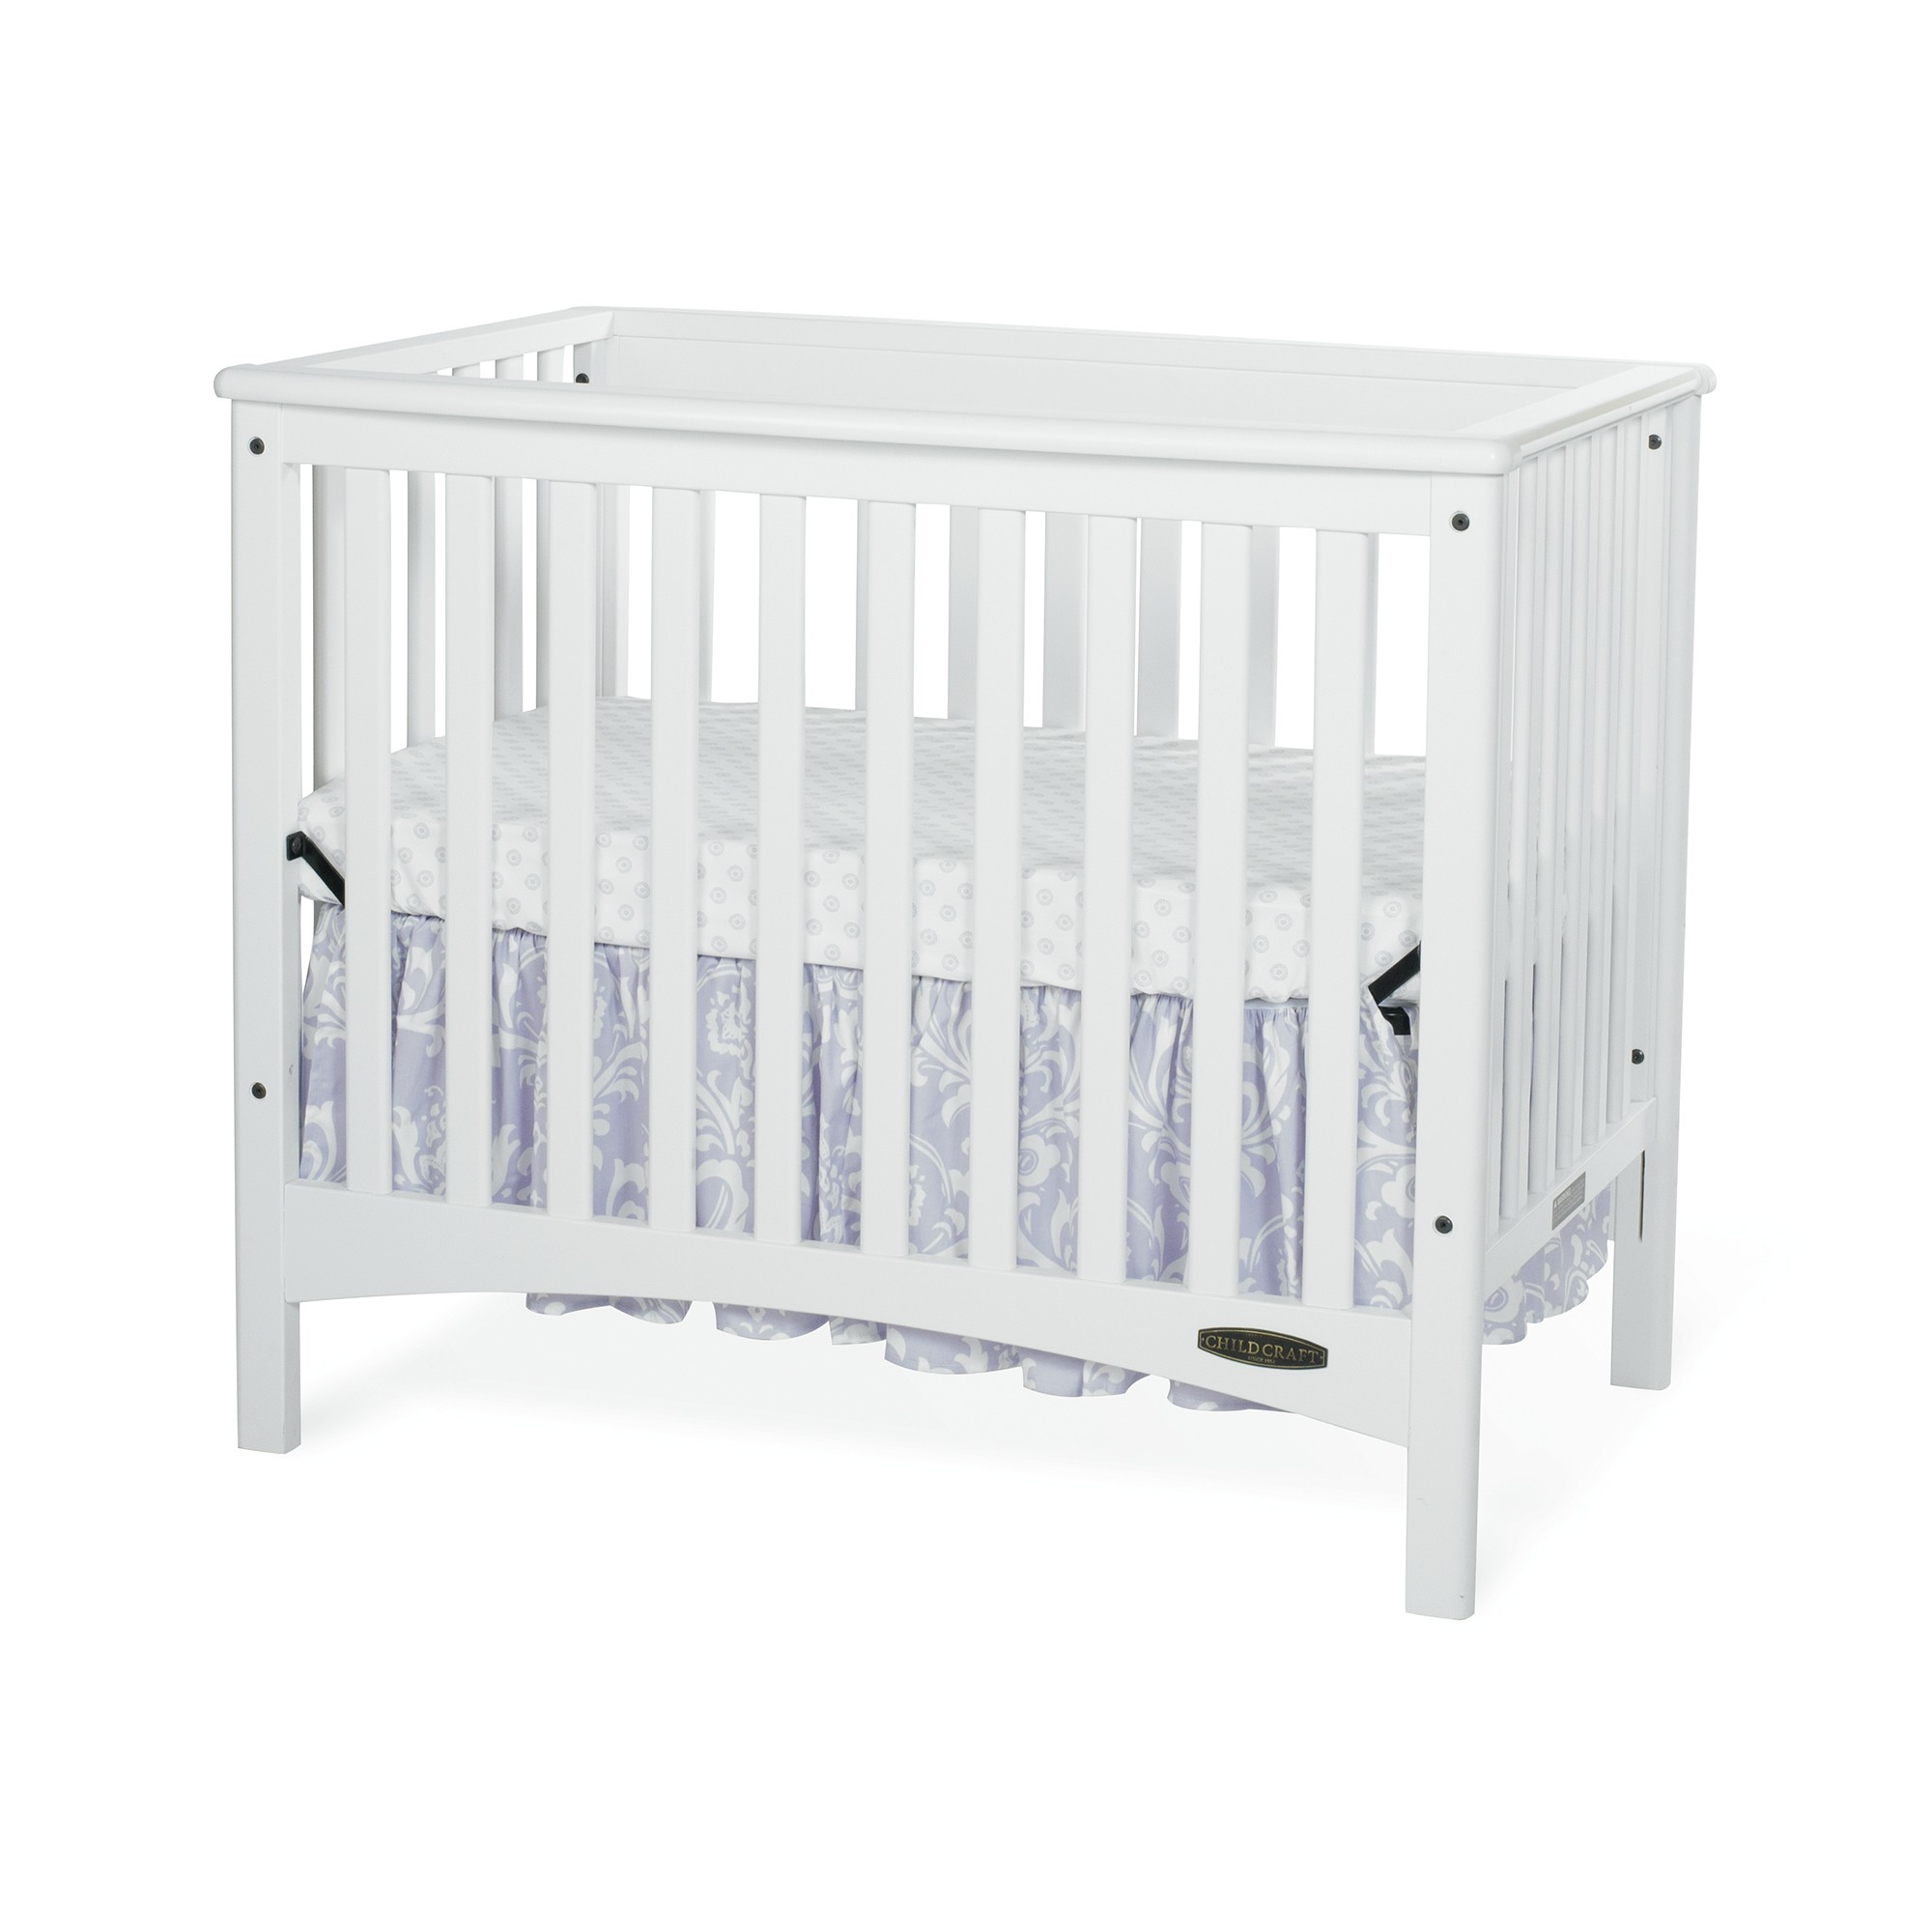 is cribs westwood children to ways than r images better for cute creativity stunning dark creative bell babies bennington us delta convertible outstanding in crib